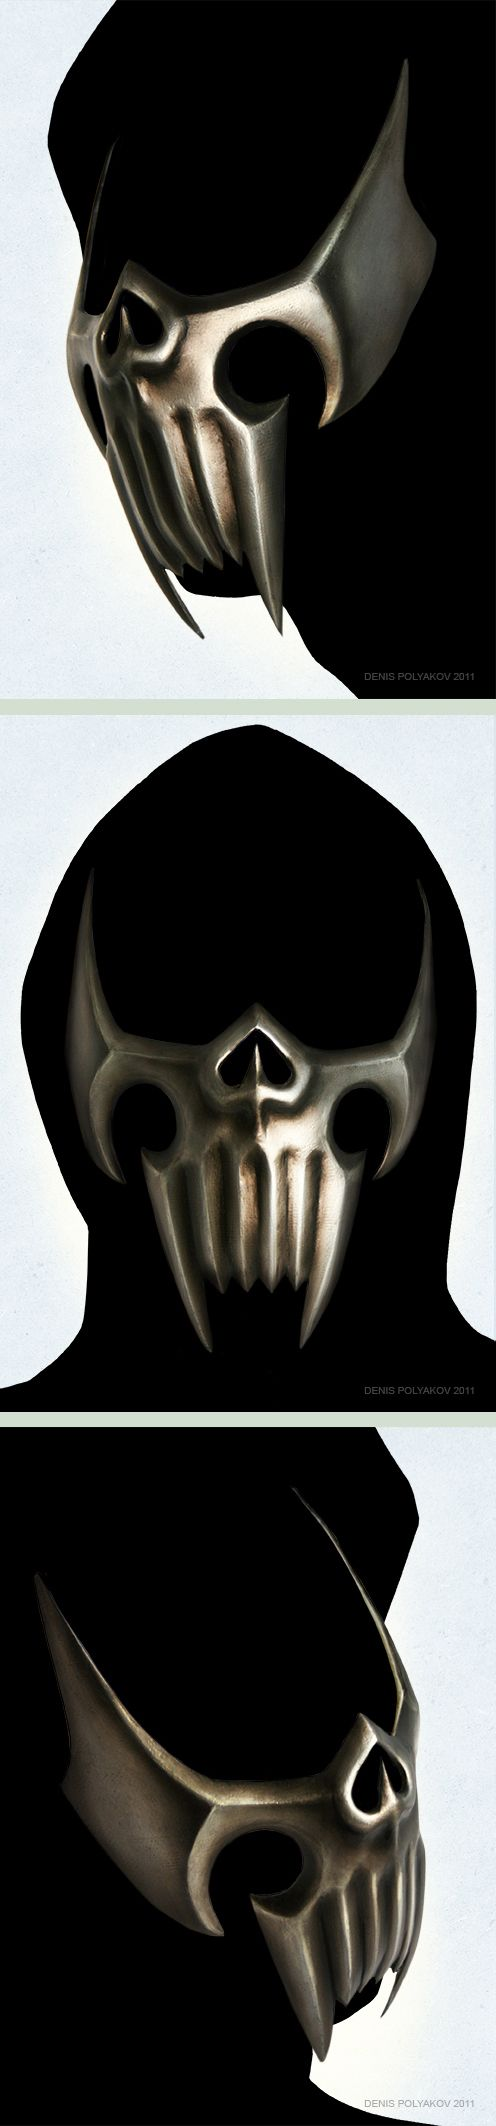 Assassin mask by ~DenisPolyakov on deviantART